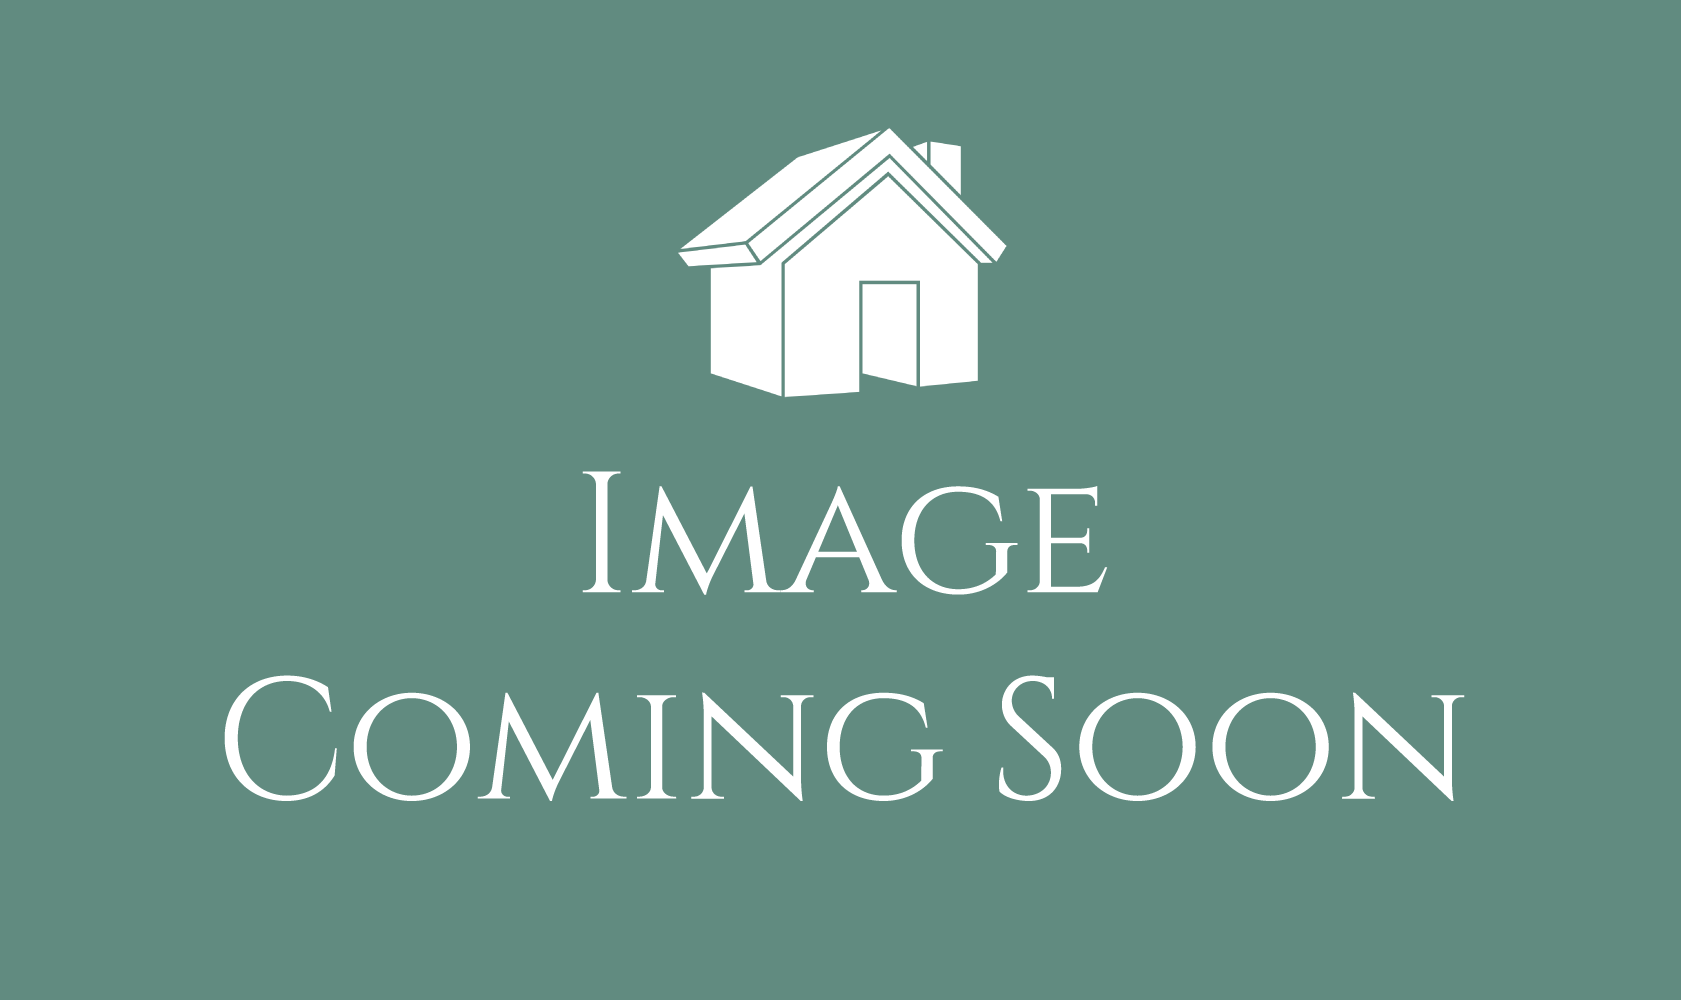 Construction-Image-Coming-Soon